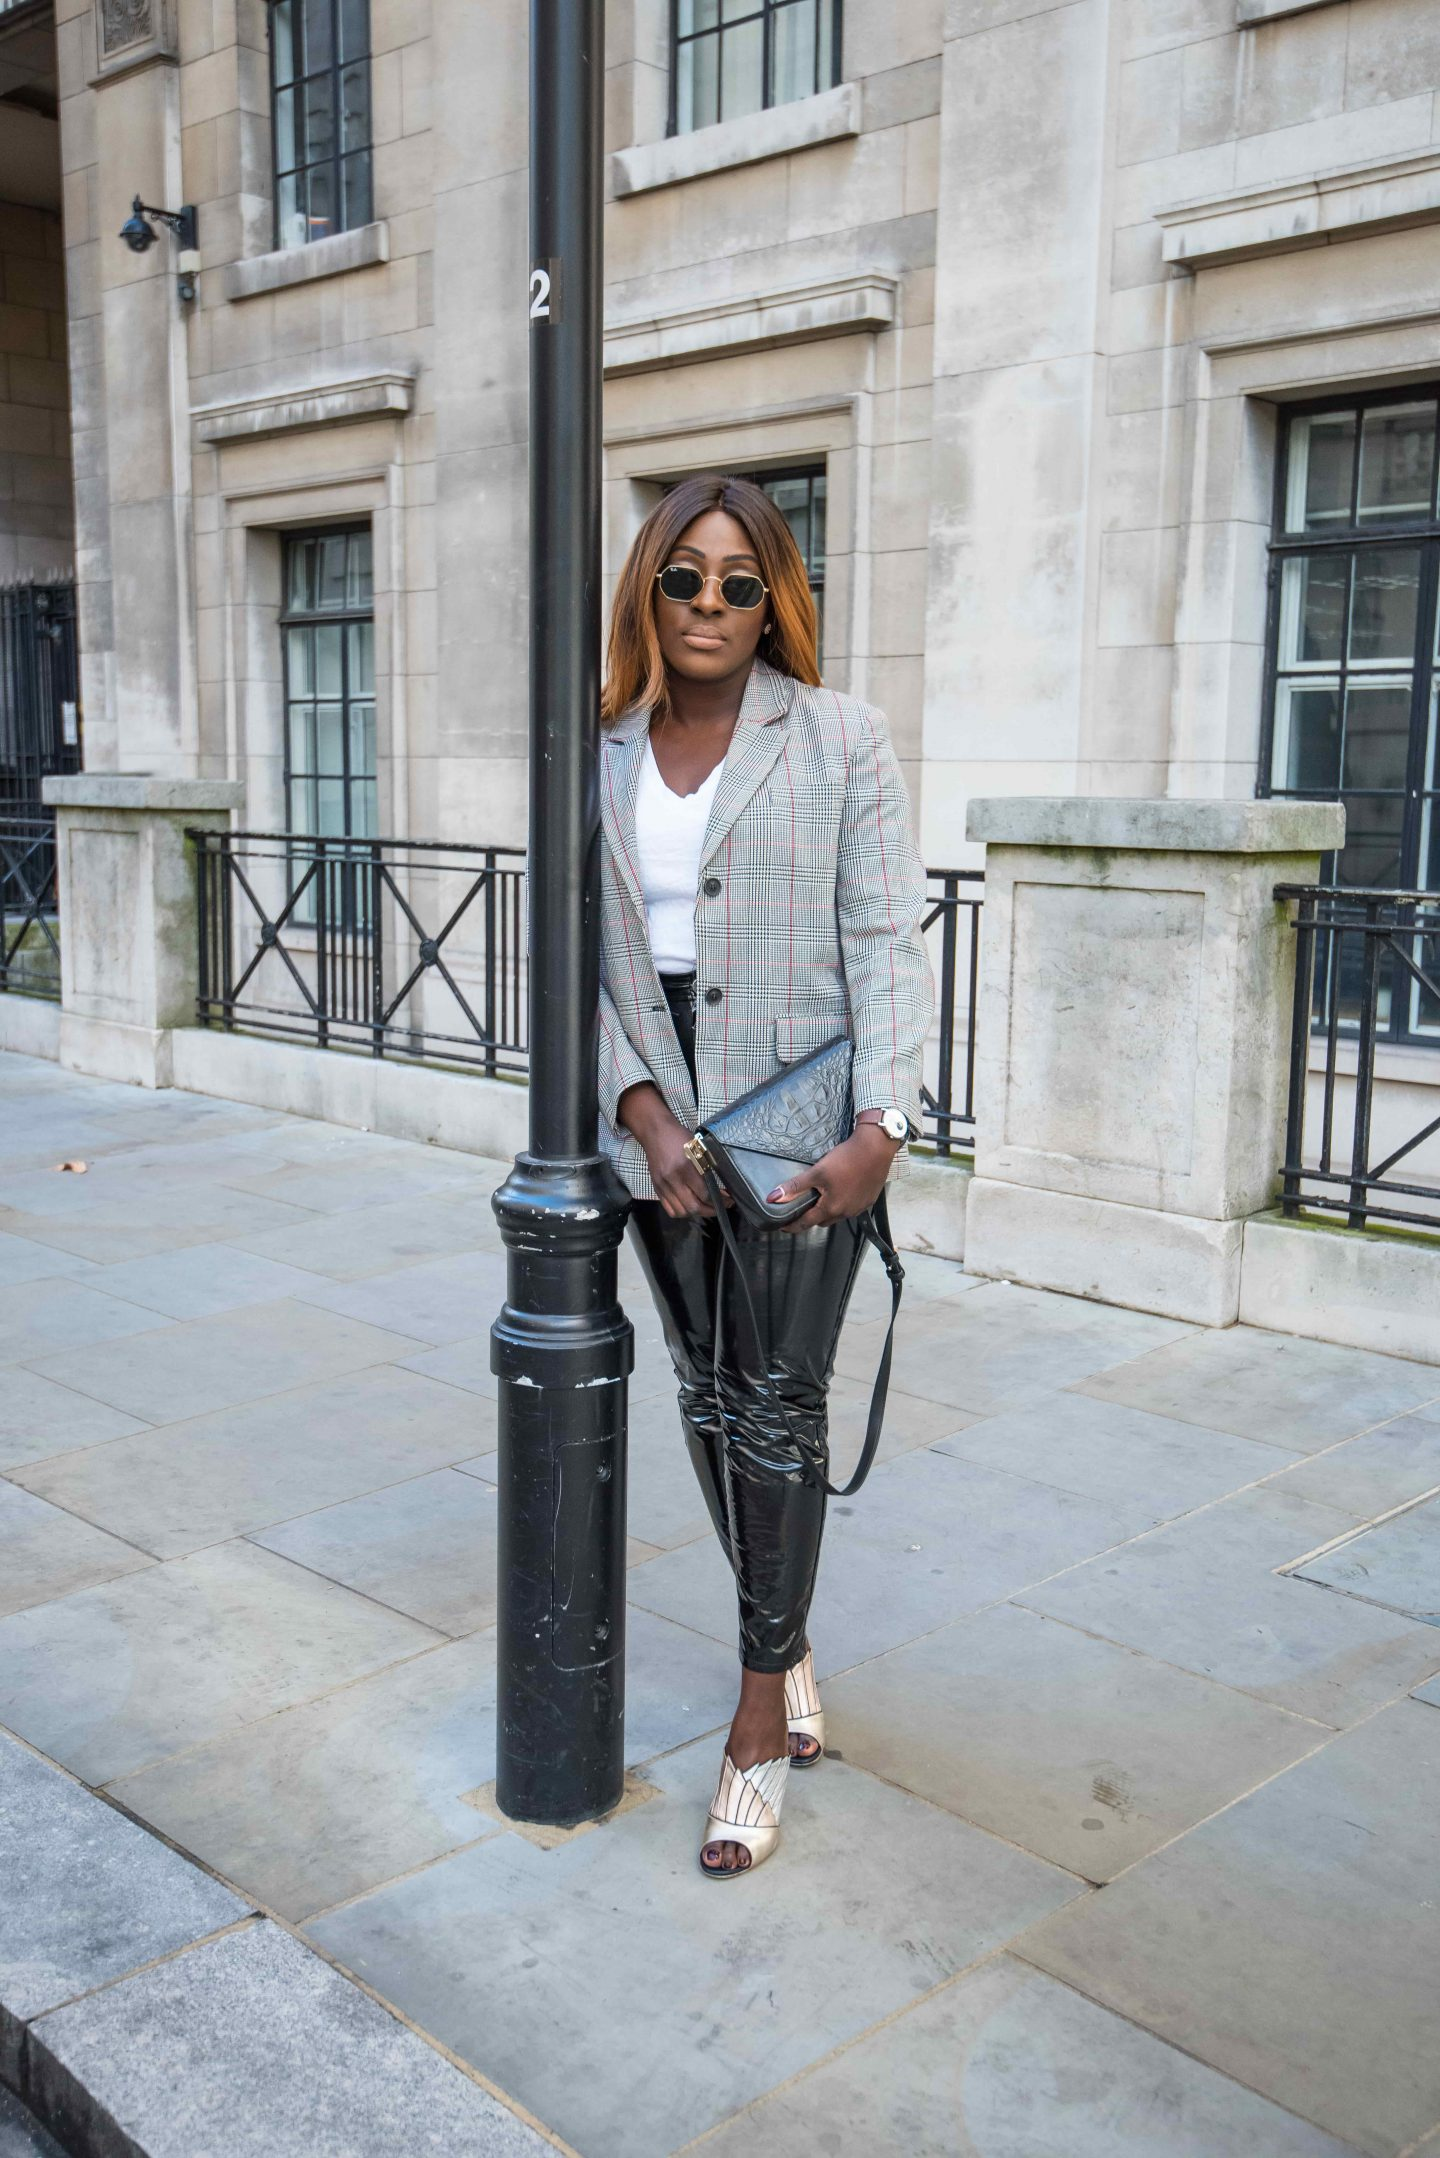 Autumn Workwear & The Vinyl Affect 7 - Zara check blazer - Alexander Wang Bag - vinyl trousers - malone soulier mules - Style and the Sass